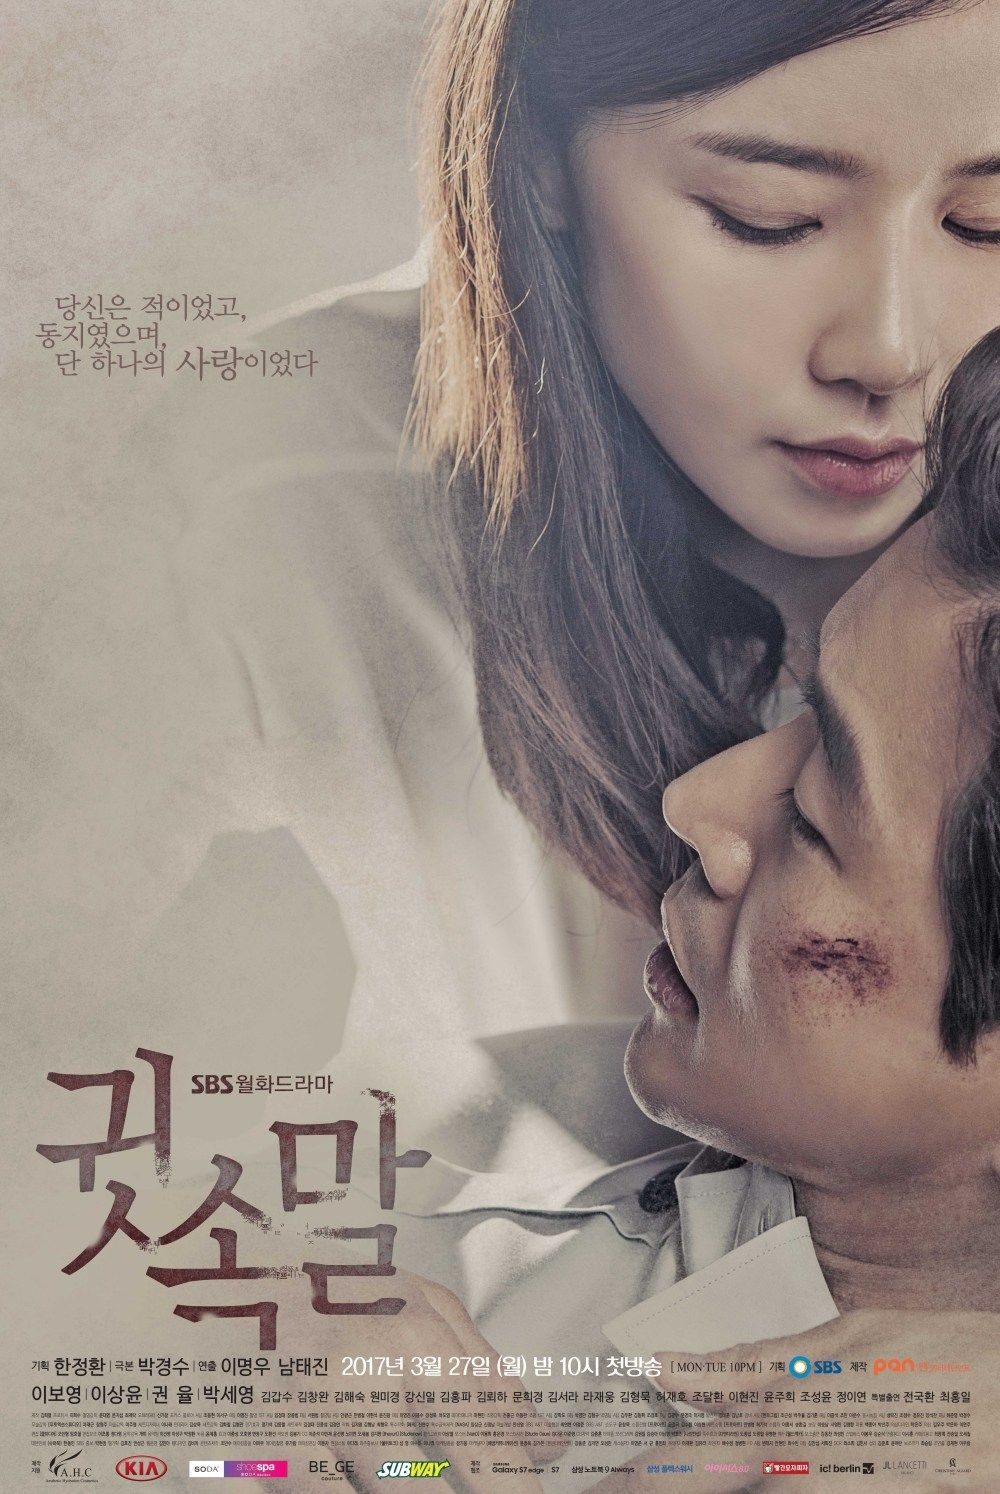 New Drama has coming out - Whisper (Korean Drama) - 2017 Download it at